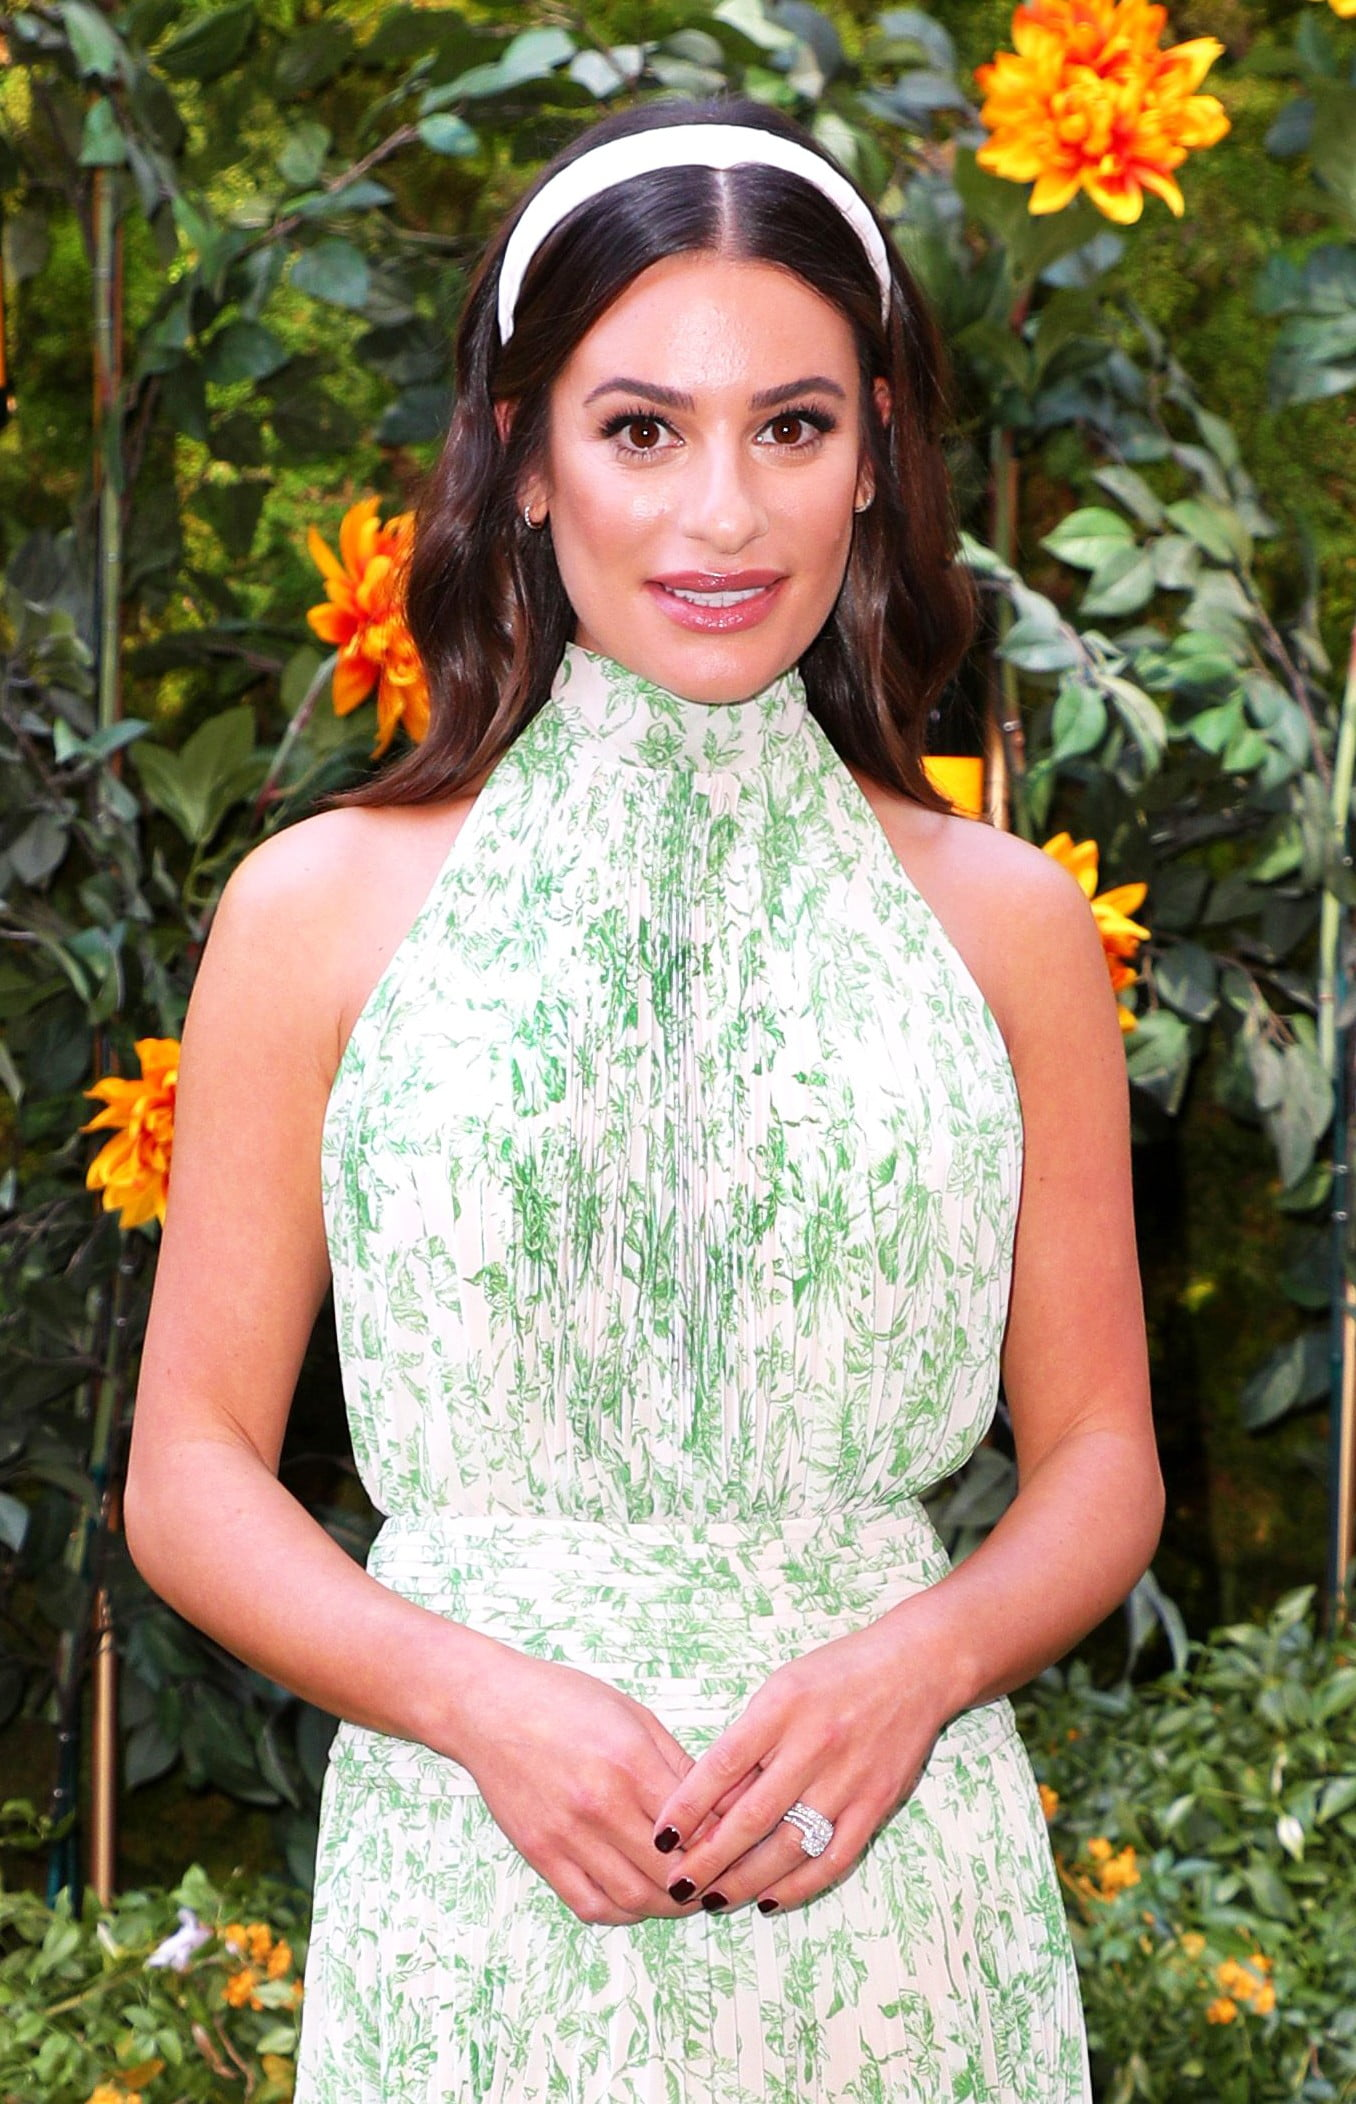 Lea Michele Confirms Her Pregnancy With Sweet Baby Bump Photo